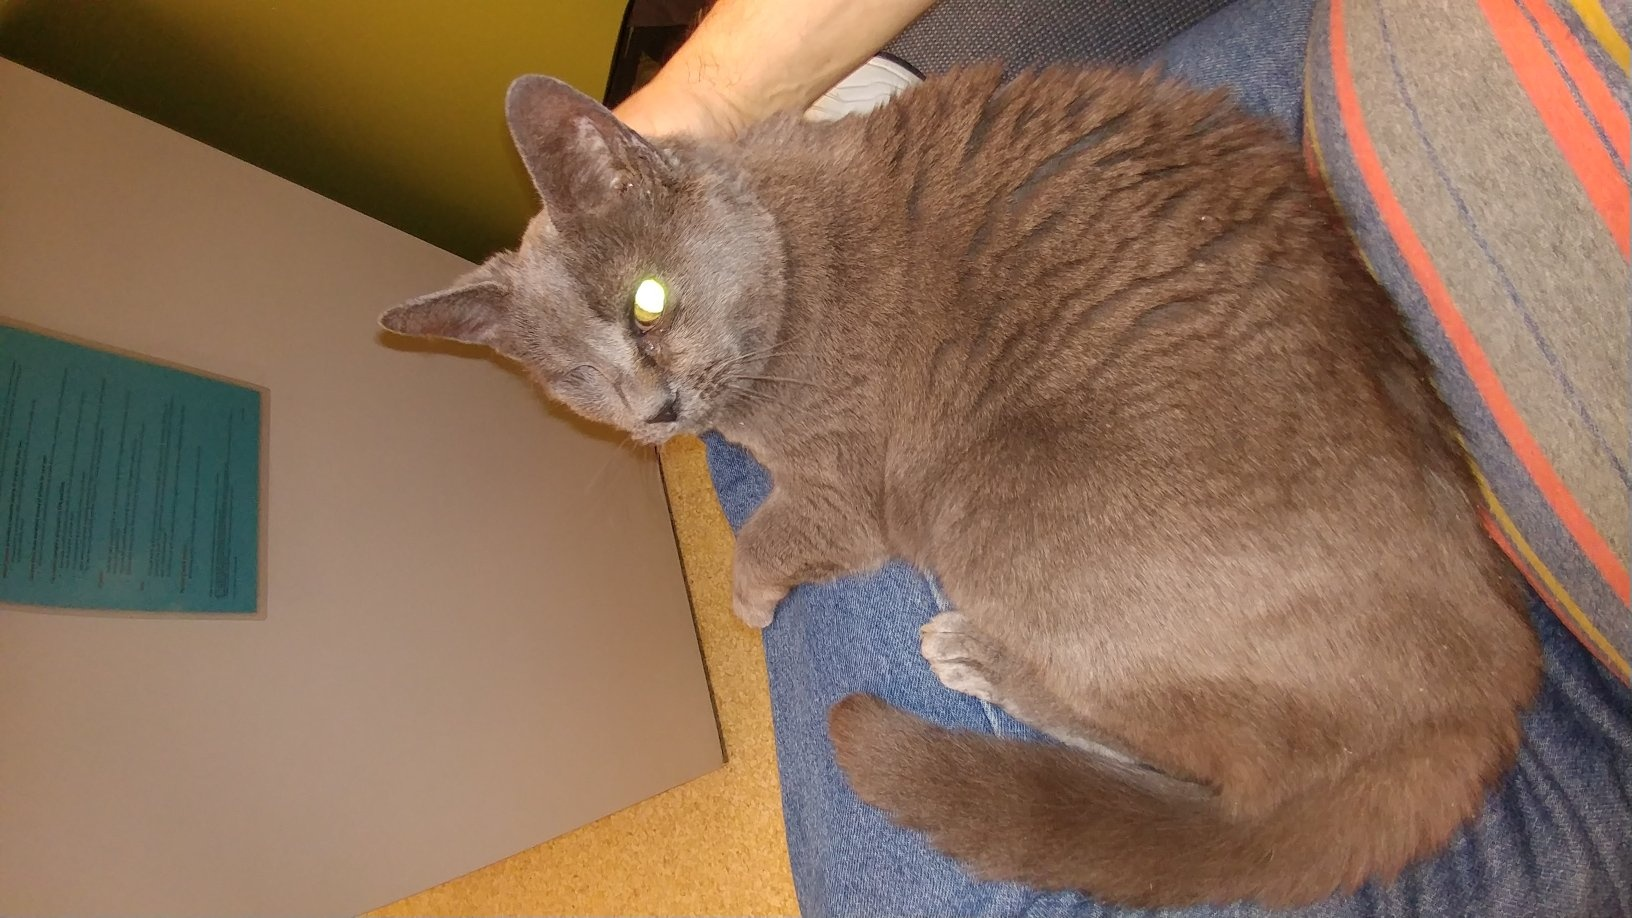 dcf0606f386b26 Would you adopt a dirty cat with special needs or would you get a ...